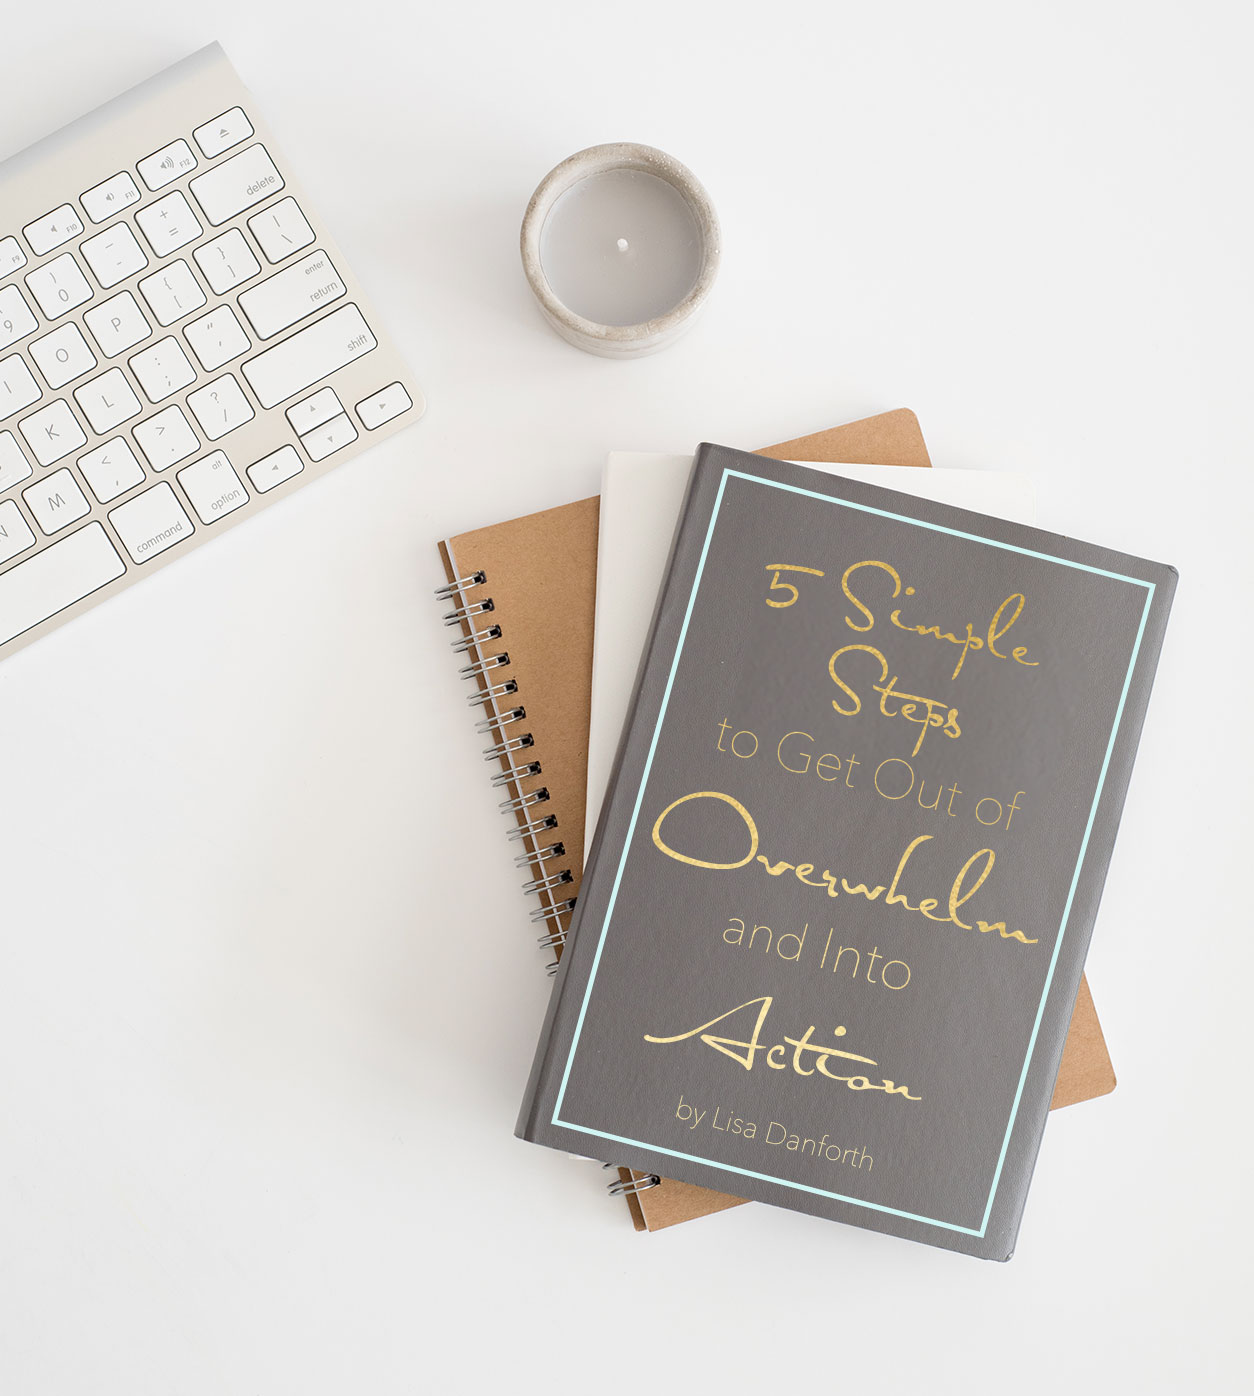 5 Simple Steps to Get Out of Overwhelm and Into Action